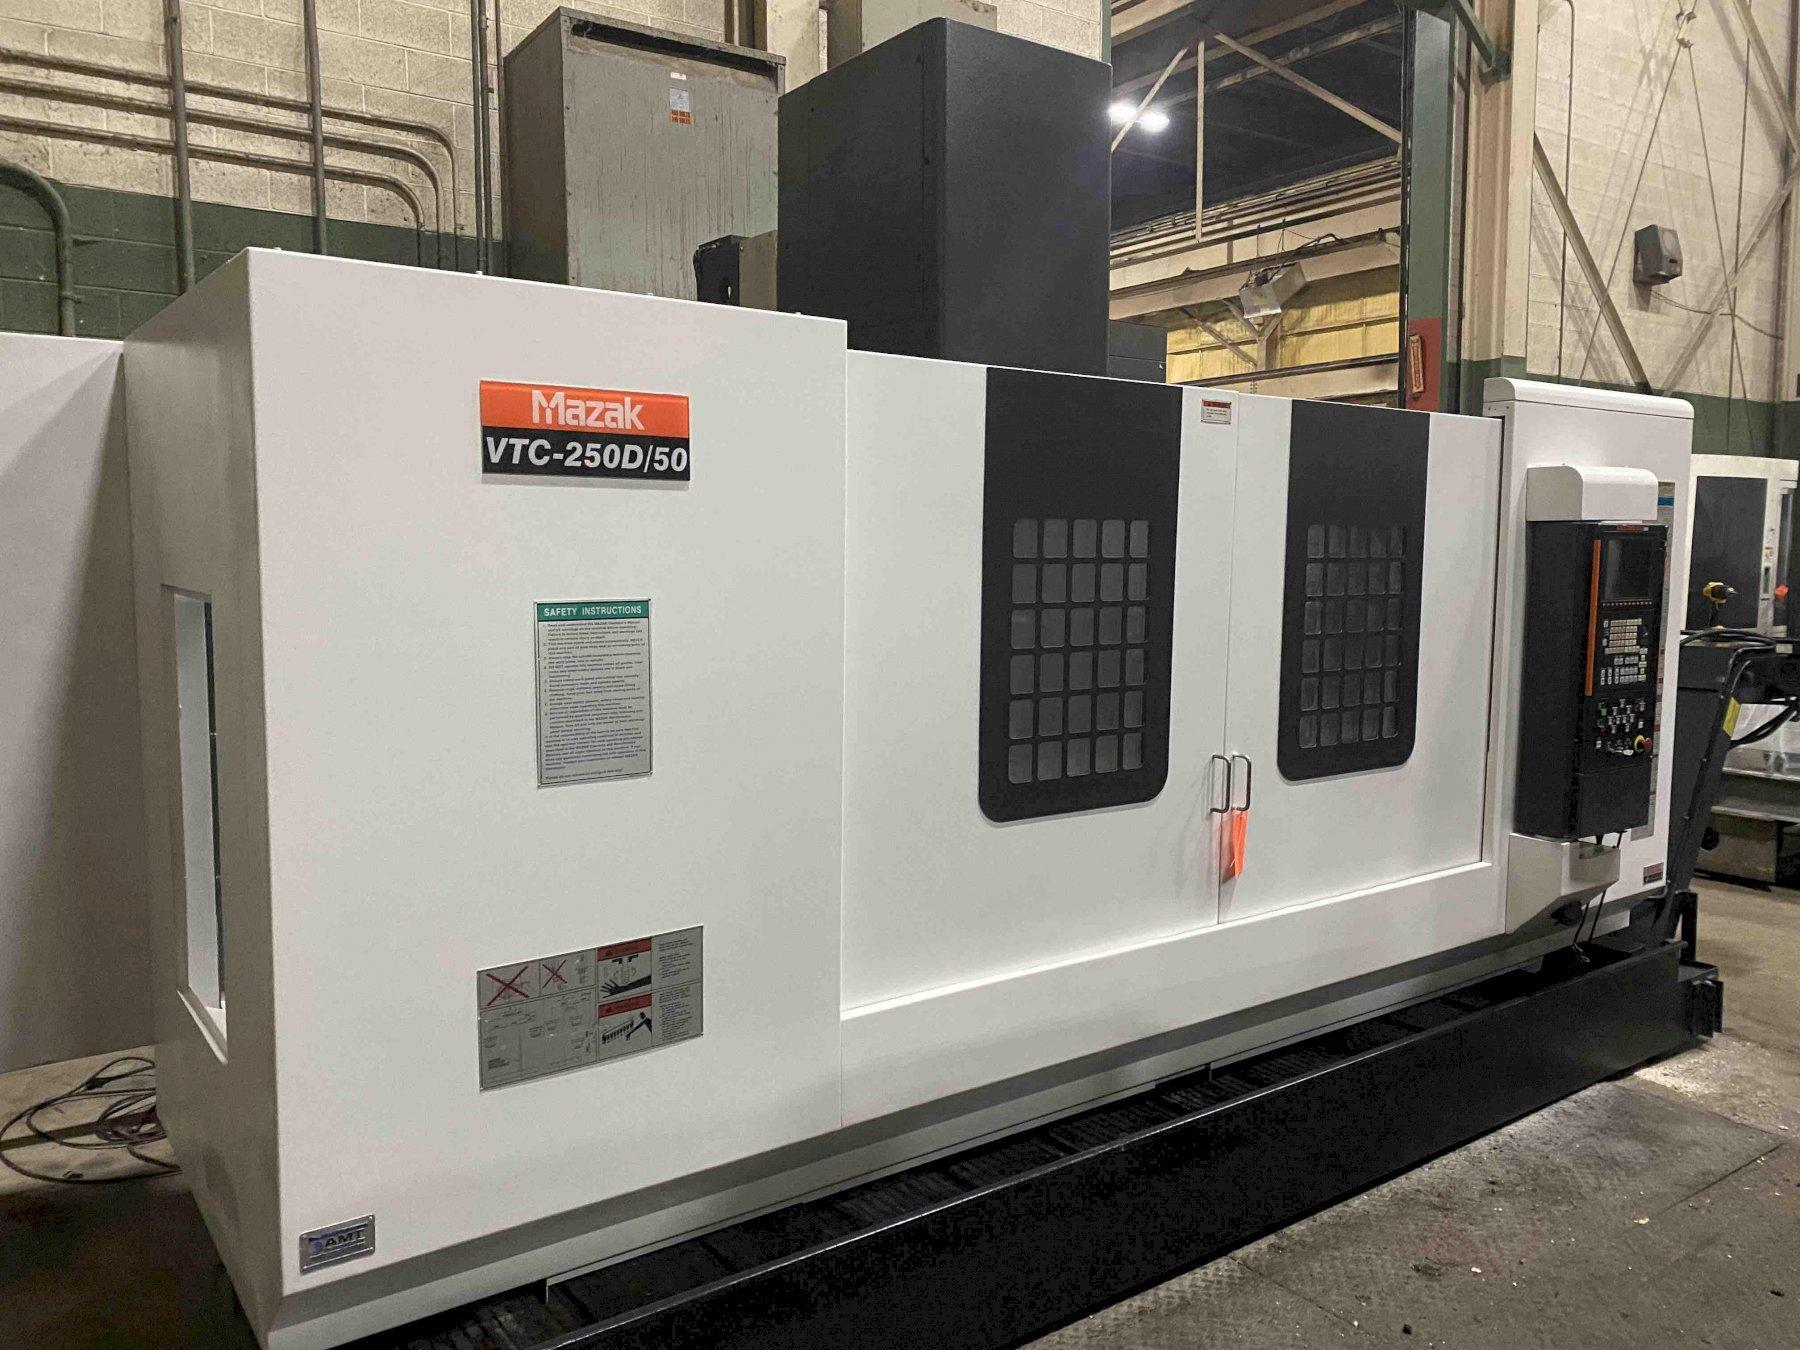 Mazak VTC250D/50 CNC Vertical Machining Center, Mazatrol, 69